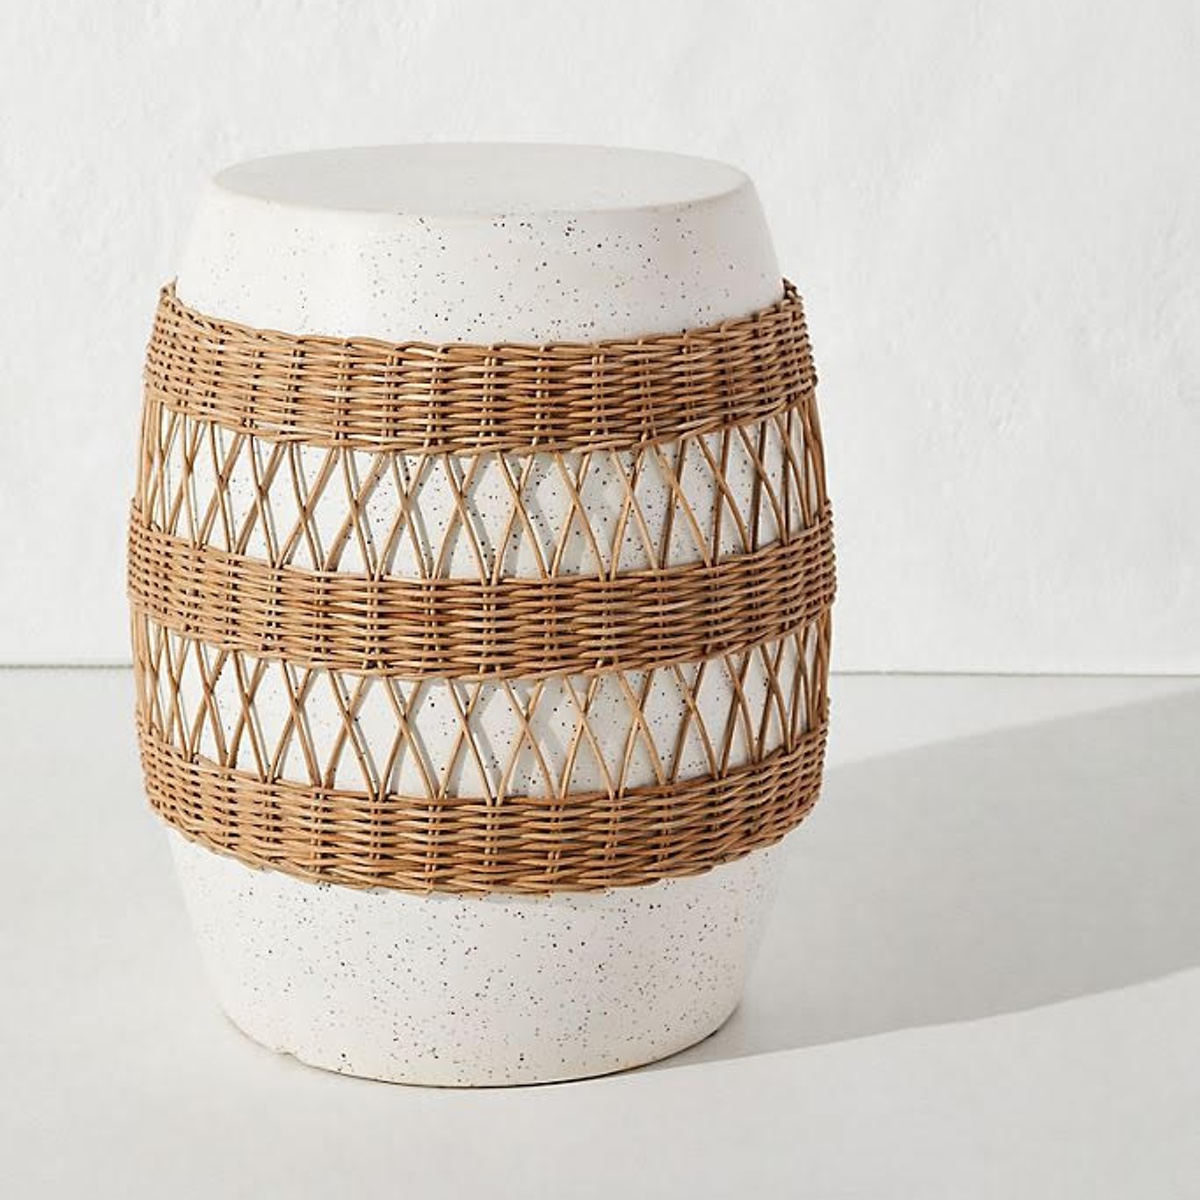 Anthropologie Rattan-Wrapped Stool